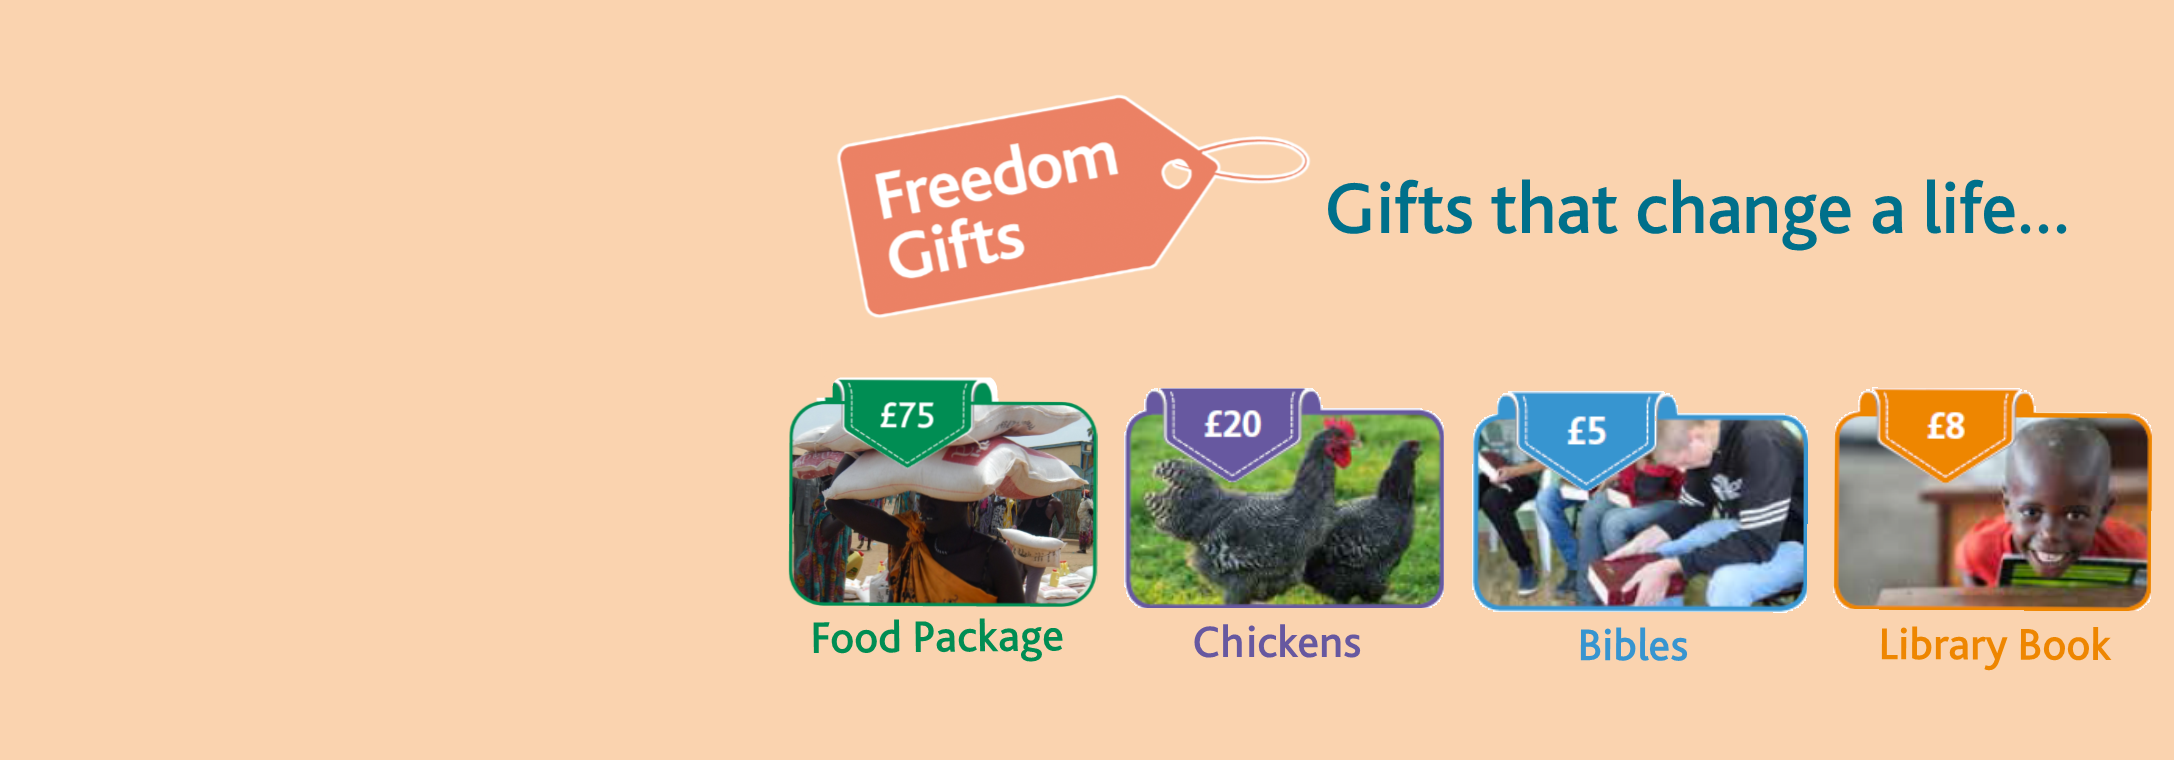 Freedom Gifts appeals image 5